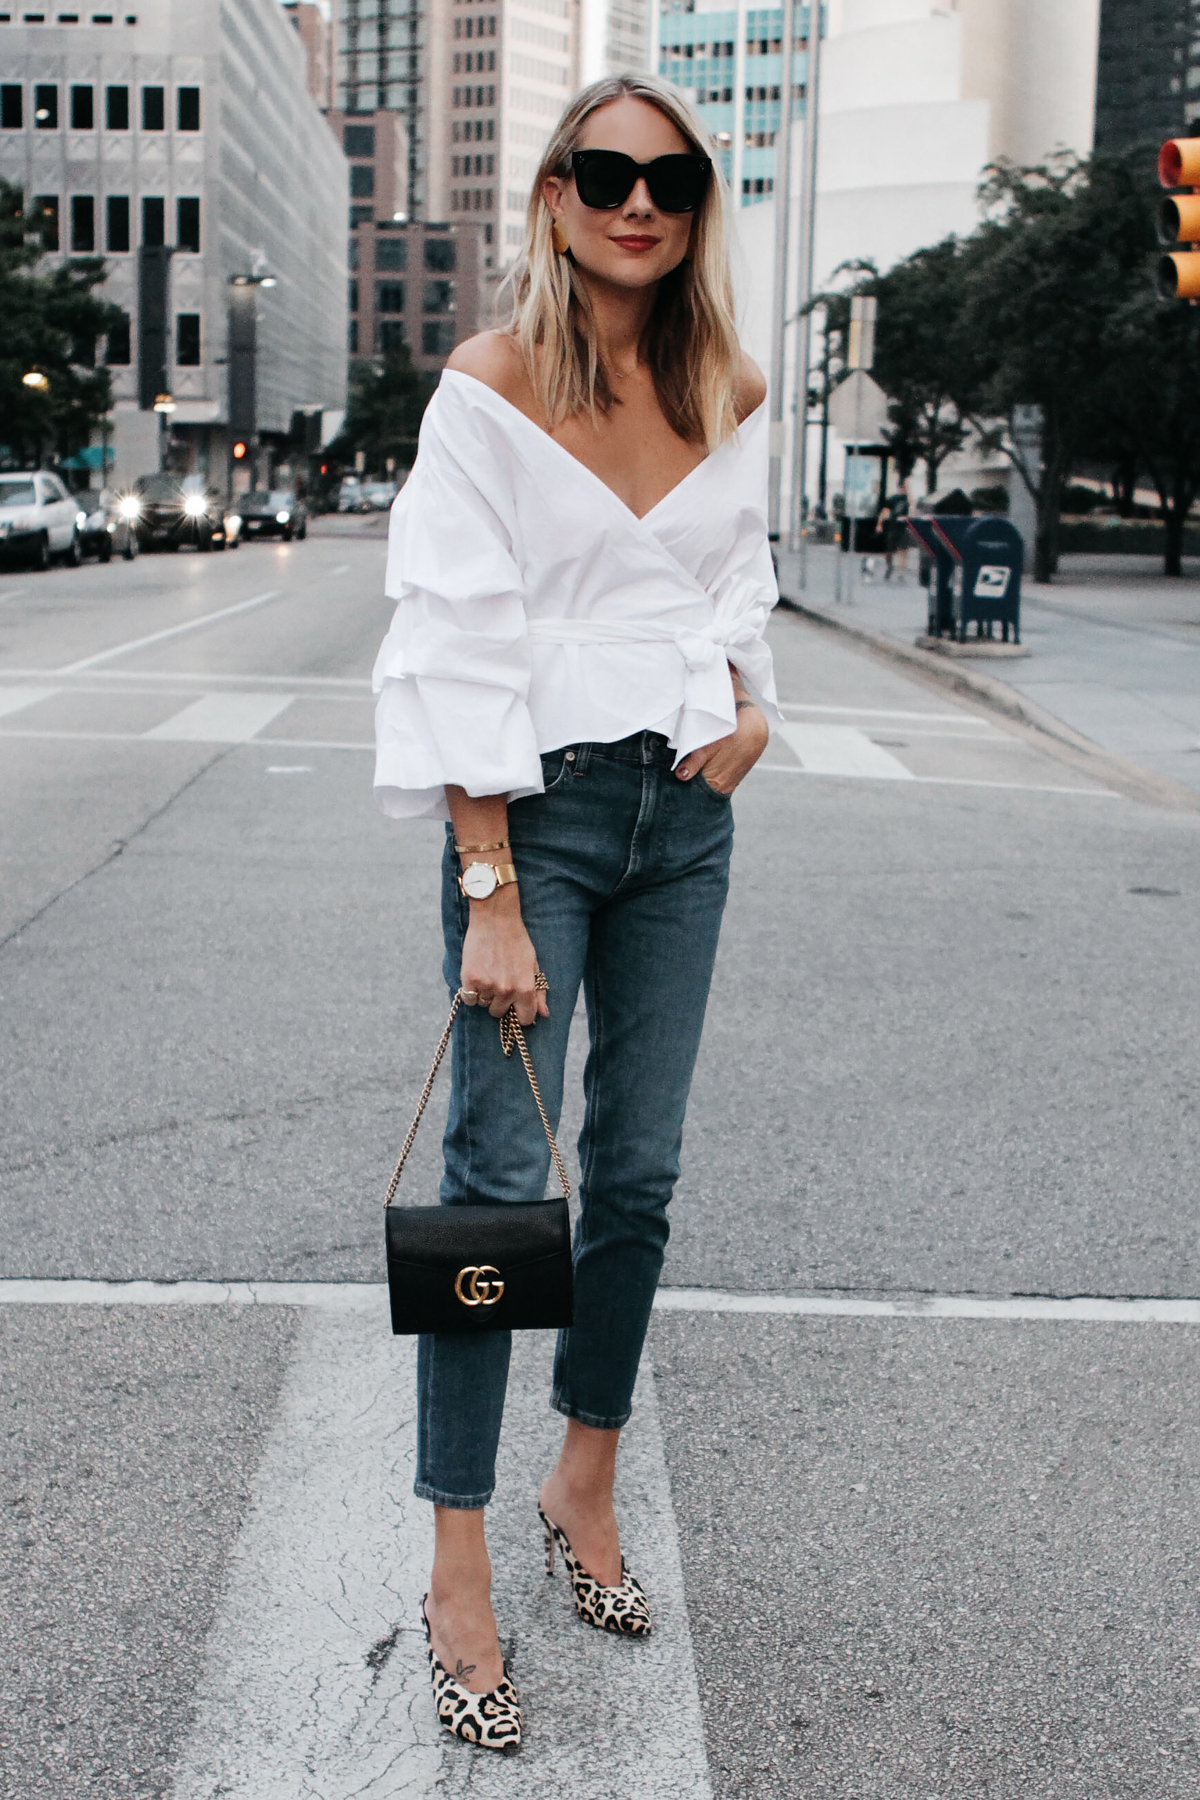 Shop for Womens Boyfriend Jeans in Womens Jeans. Buy products such as Women's Midrise Boyfriend Jean, Women's Modern Midrise Boyfriend Jean at Walmart and save.